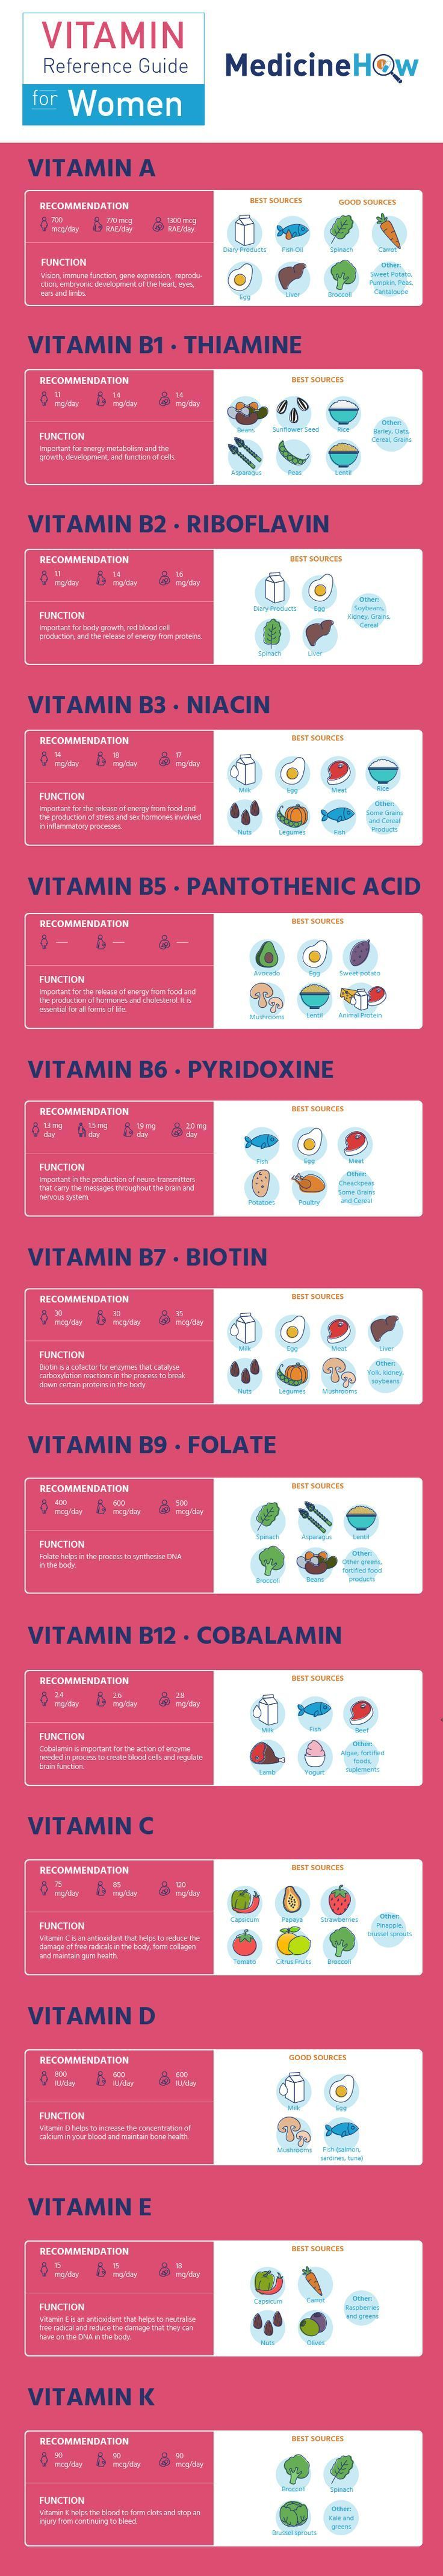 The right vitamin regimen can help you stay healthy as you age! https://athenainstitute.com/hormonesandyourhealth.html